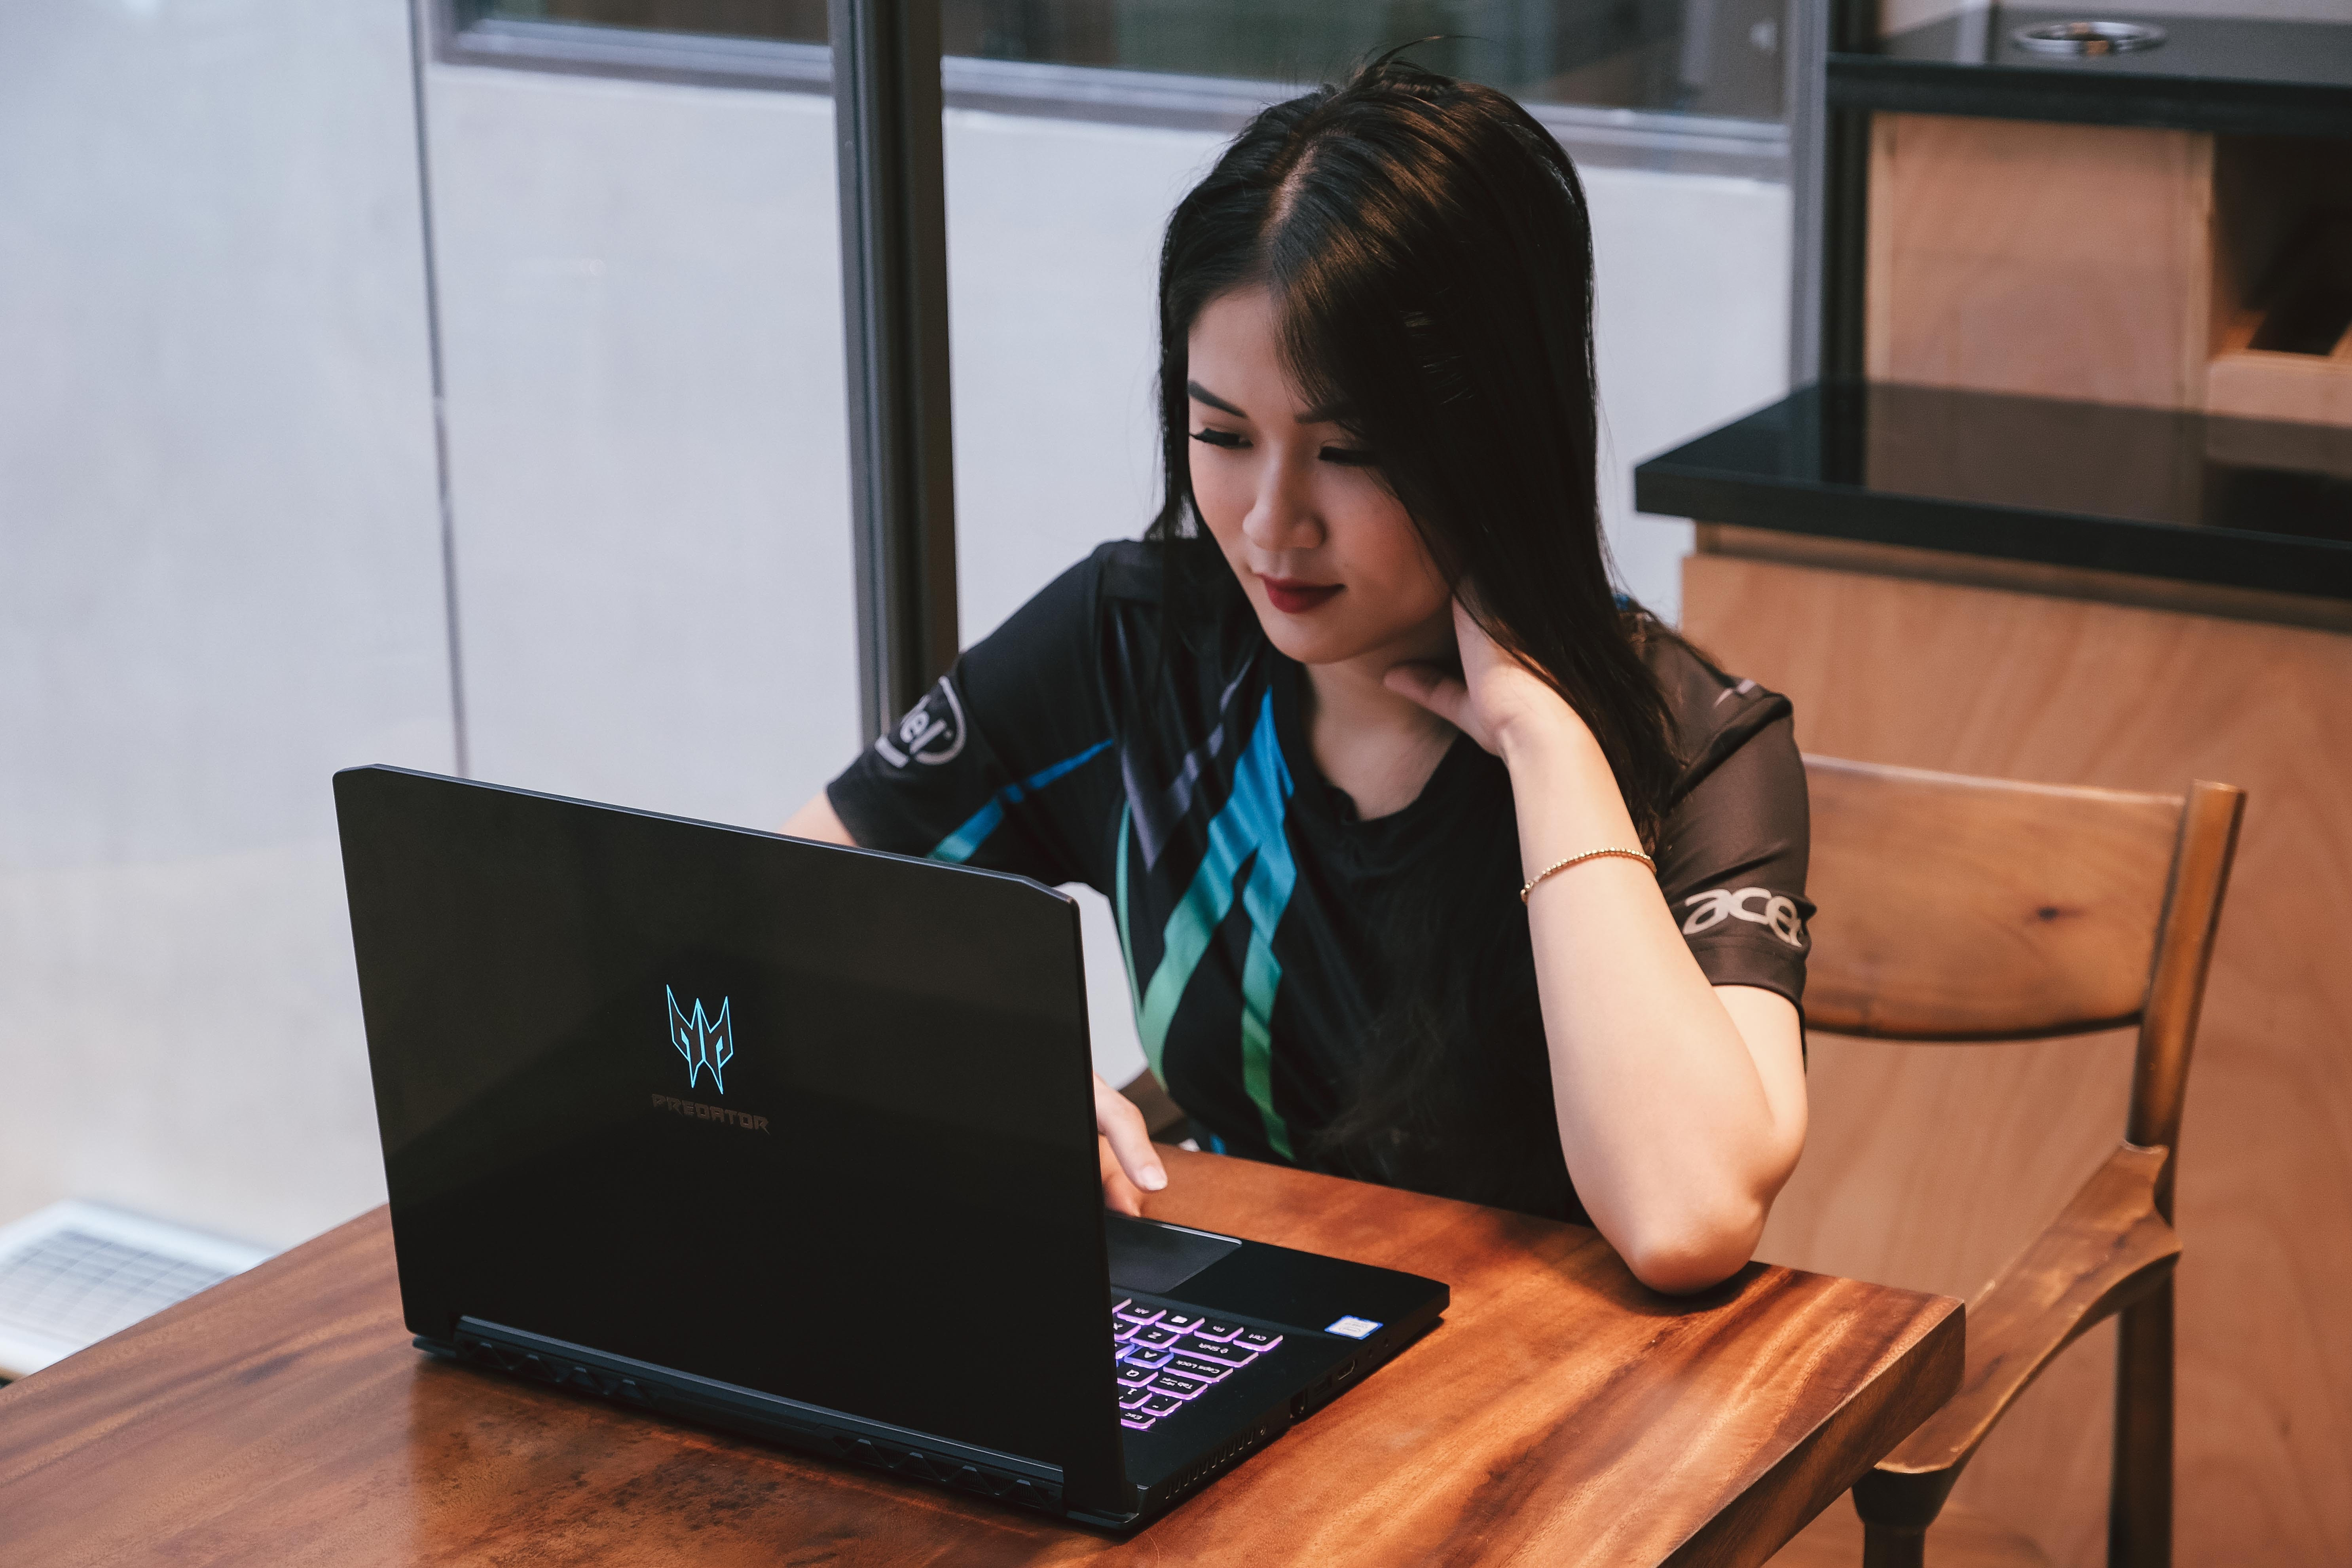 woman using laptop computer while sitting at the table